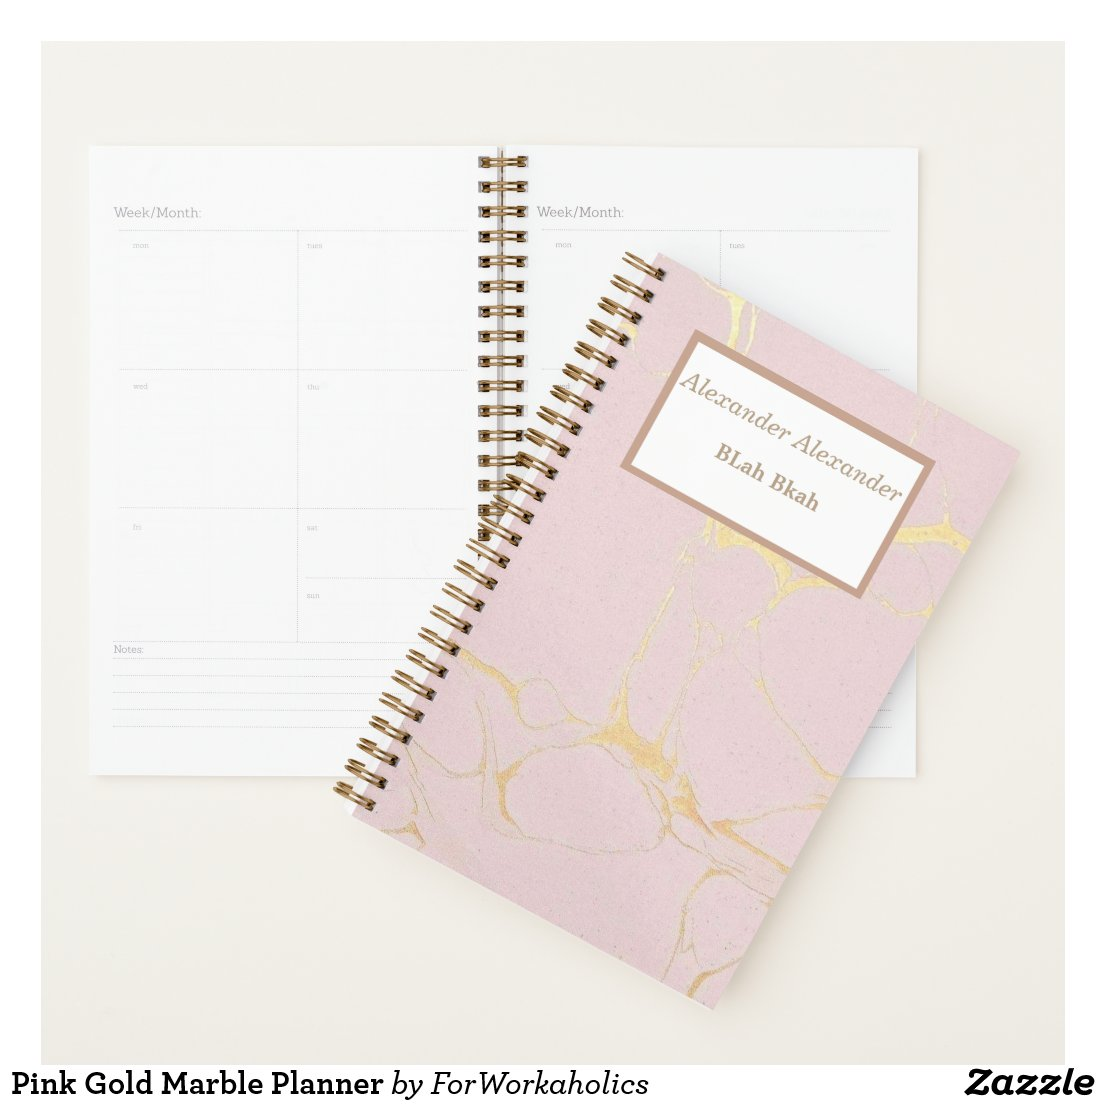 Pink Gold Marble Planner